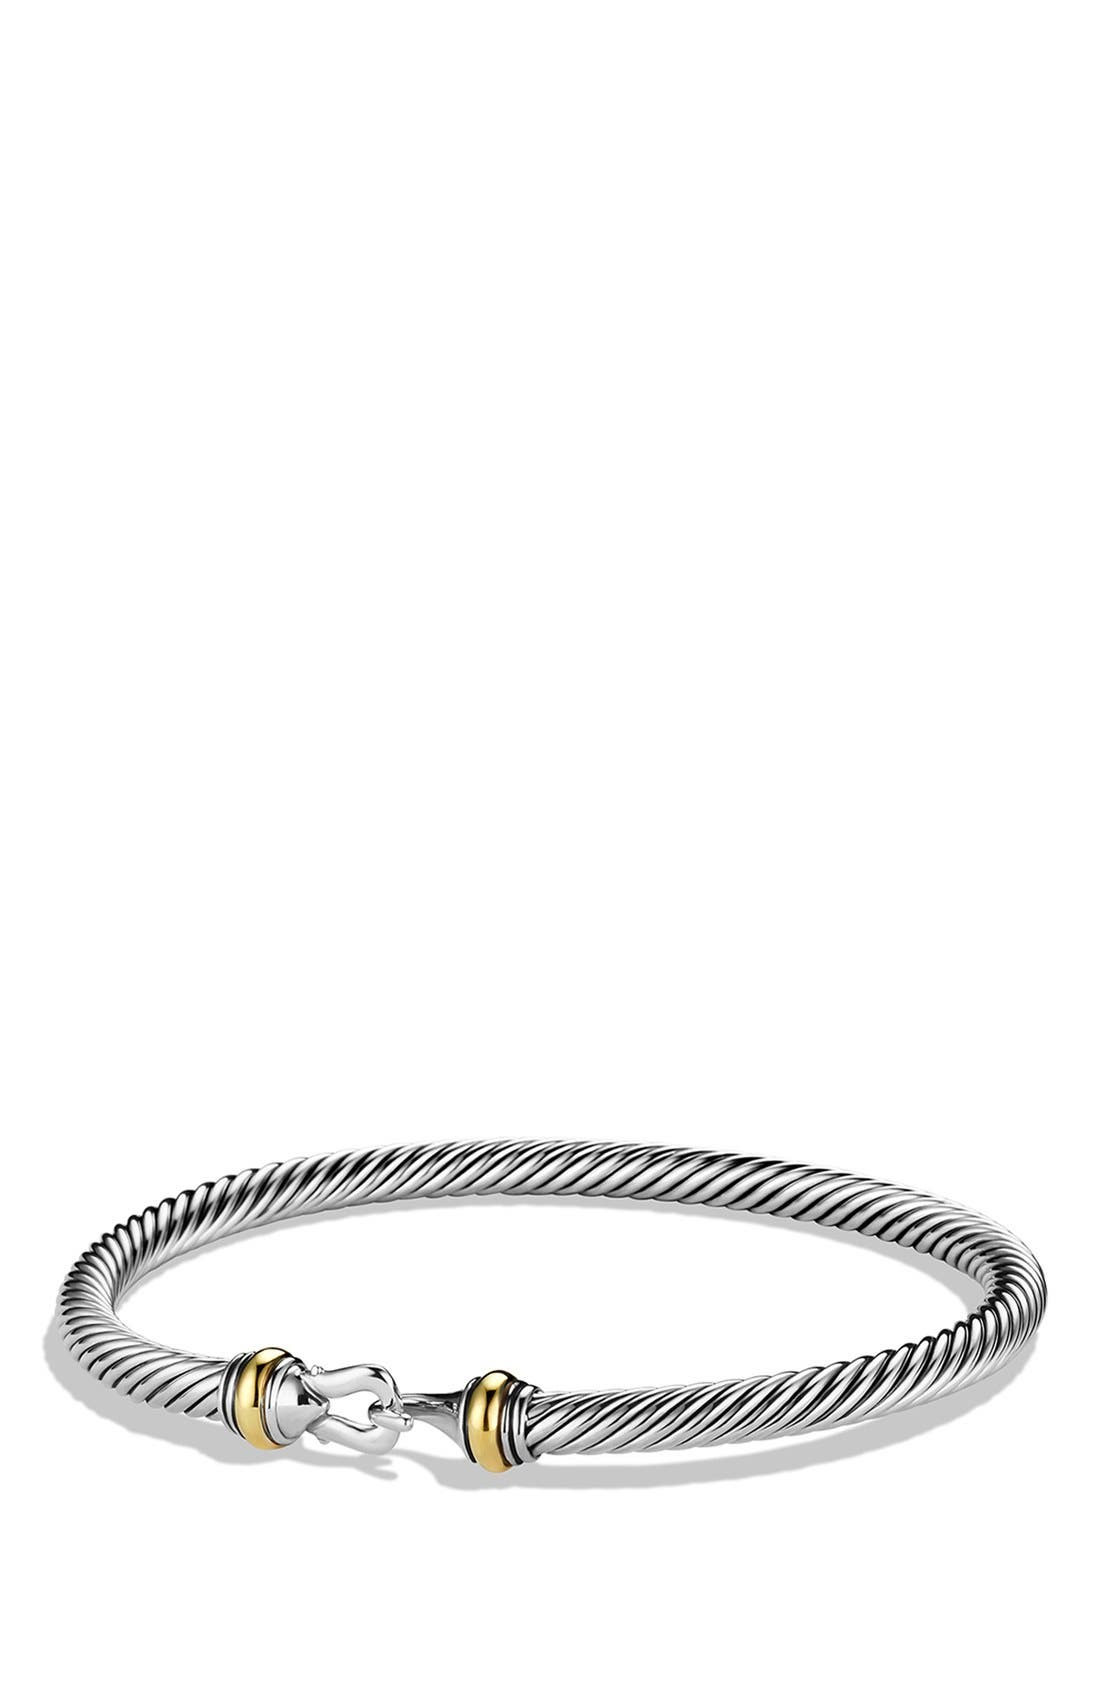 Alternate Image 1 Selected - David Yurman 'Buckle Cable' Bracelet with Gold